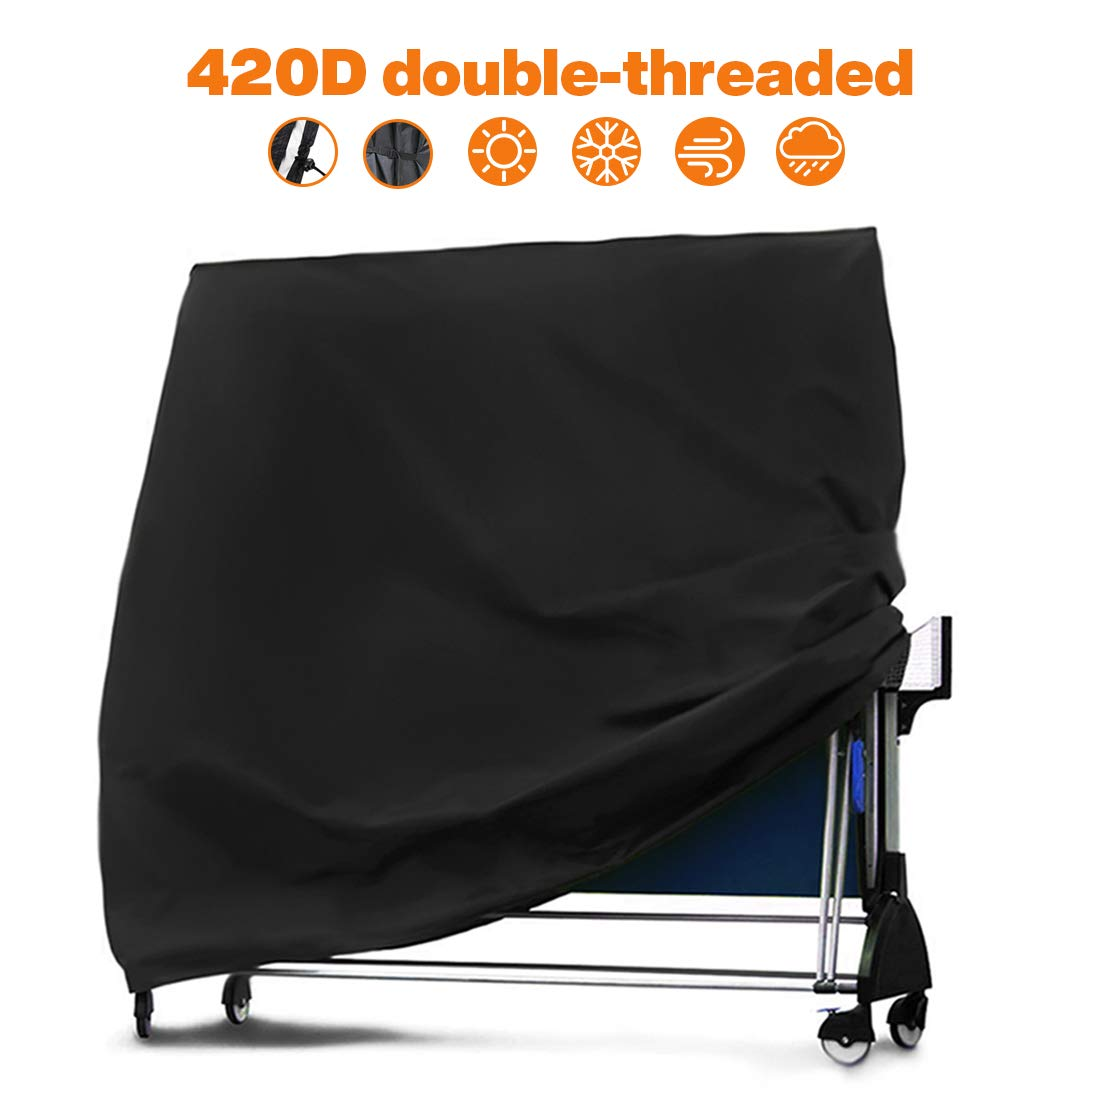 SPROTW Ping Pong Table Cover, Upgrade 420D Oxford Heavy Duty Protect Dust & Damage Table Tennis Cover, Weather Resistant for Folding Tables(65'' x 28'' x 73'') by SPROTW